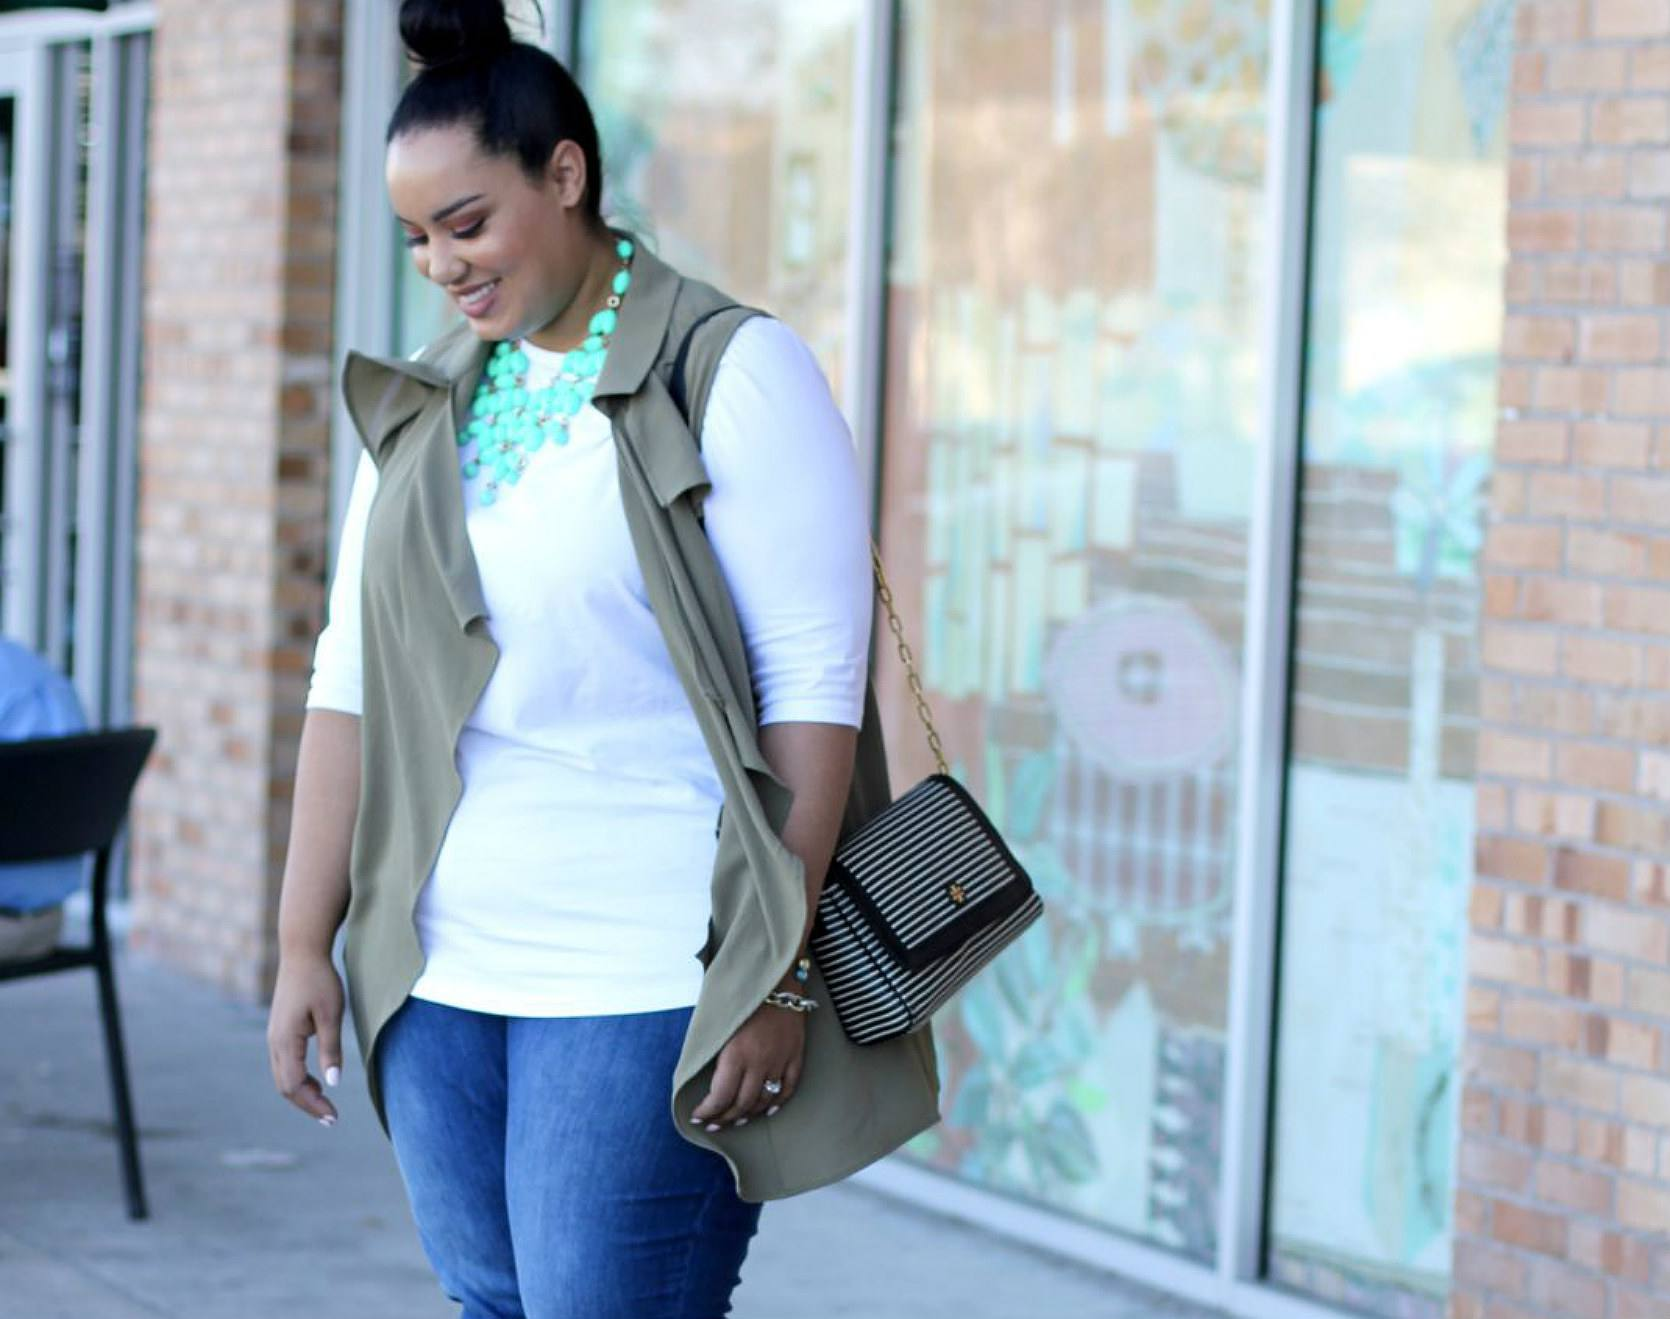 Street style in plus size jeans and statement necklace